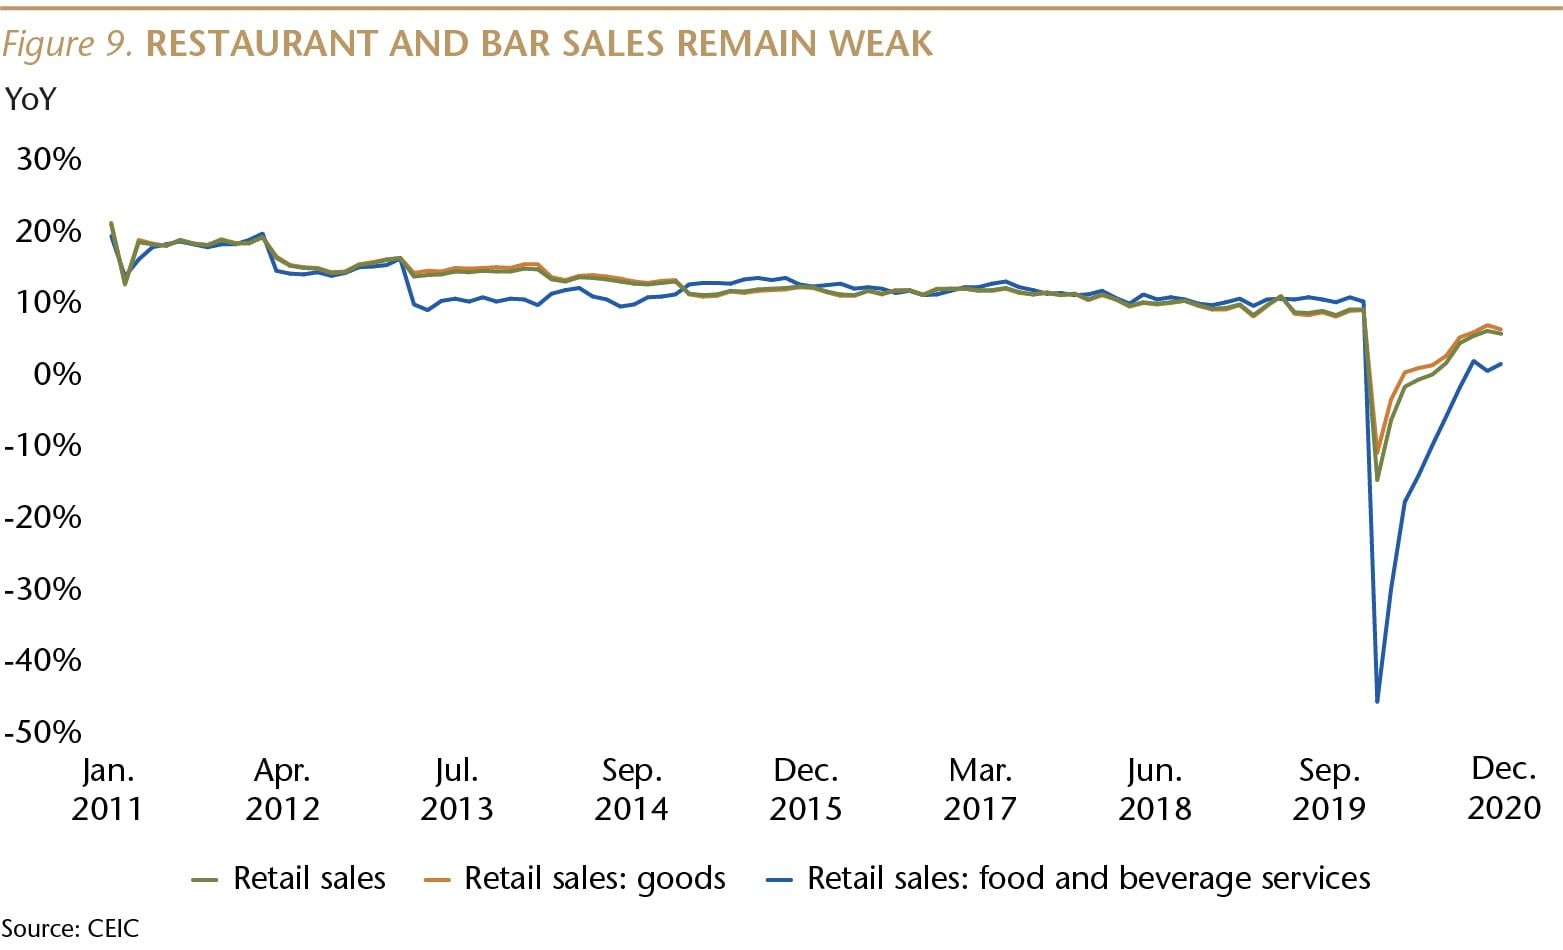 SI073_Figure 9_Bar Sales Remain Weak_WEB-01-min.jpg